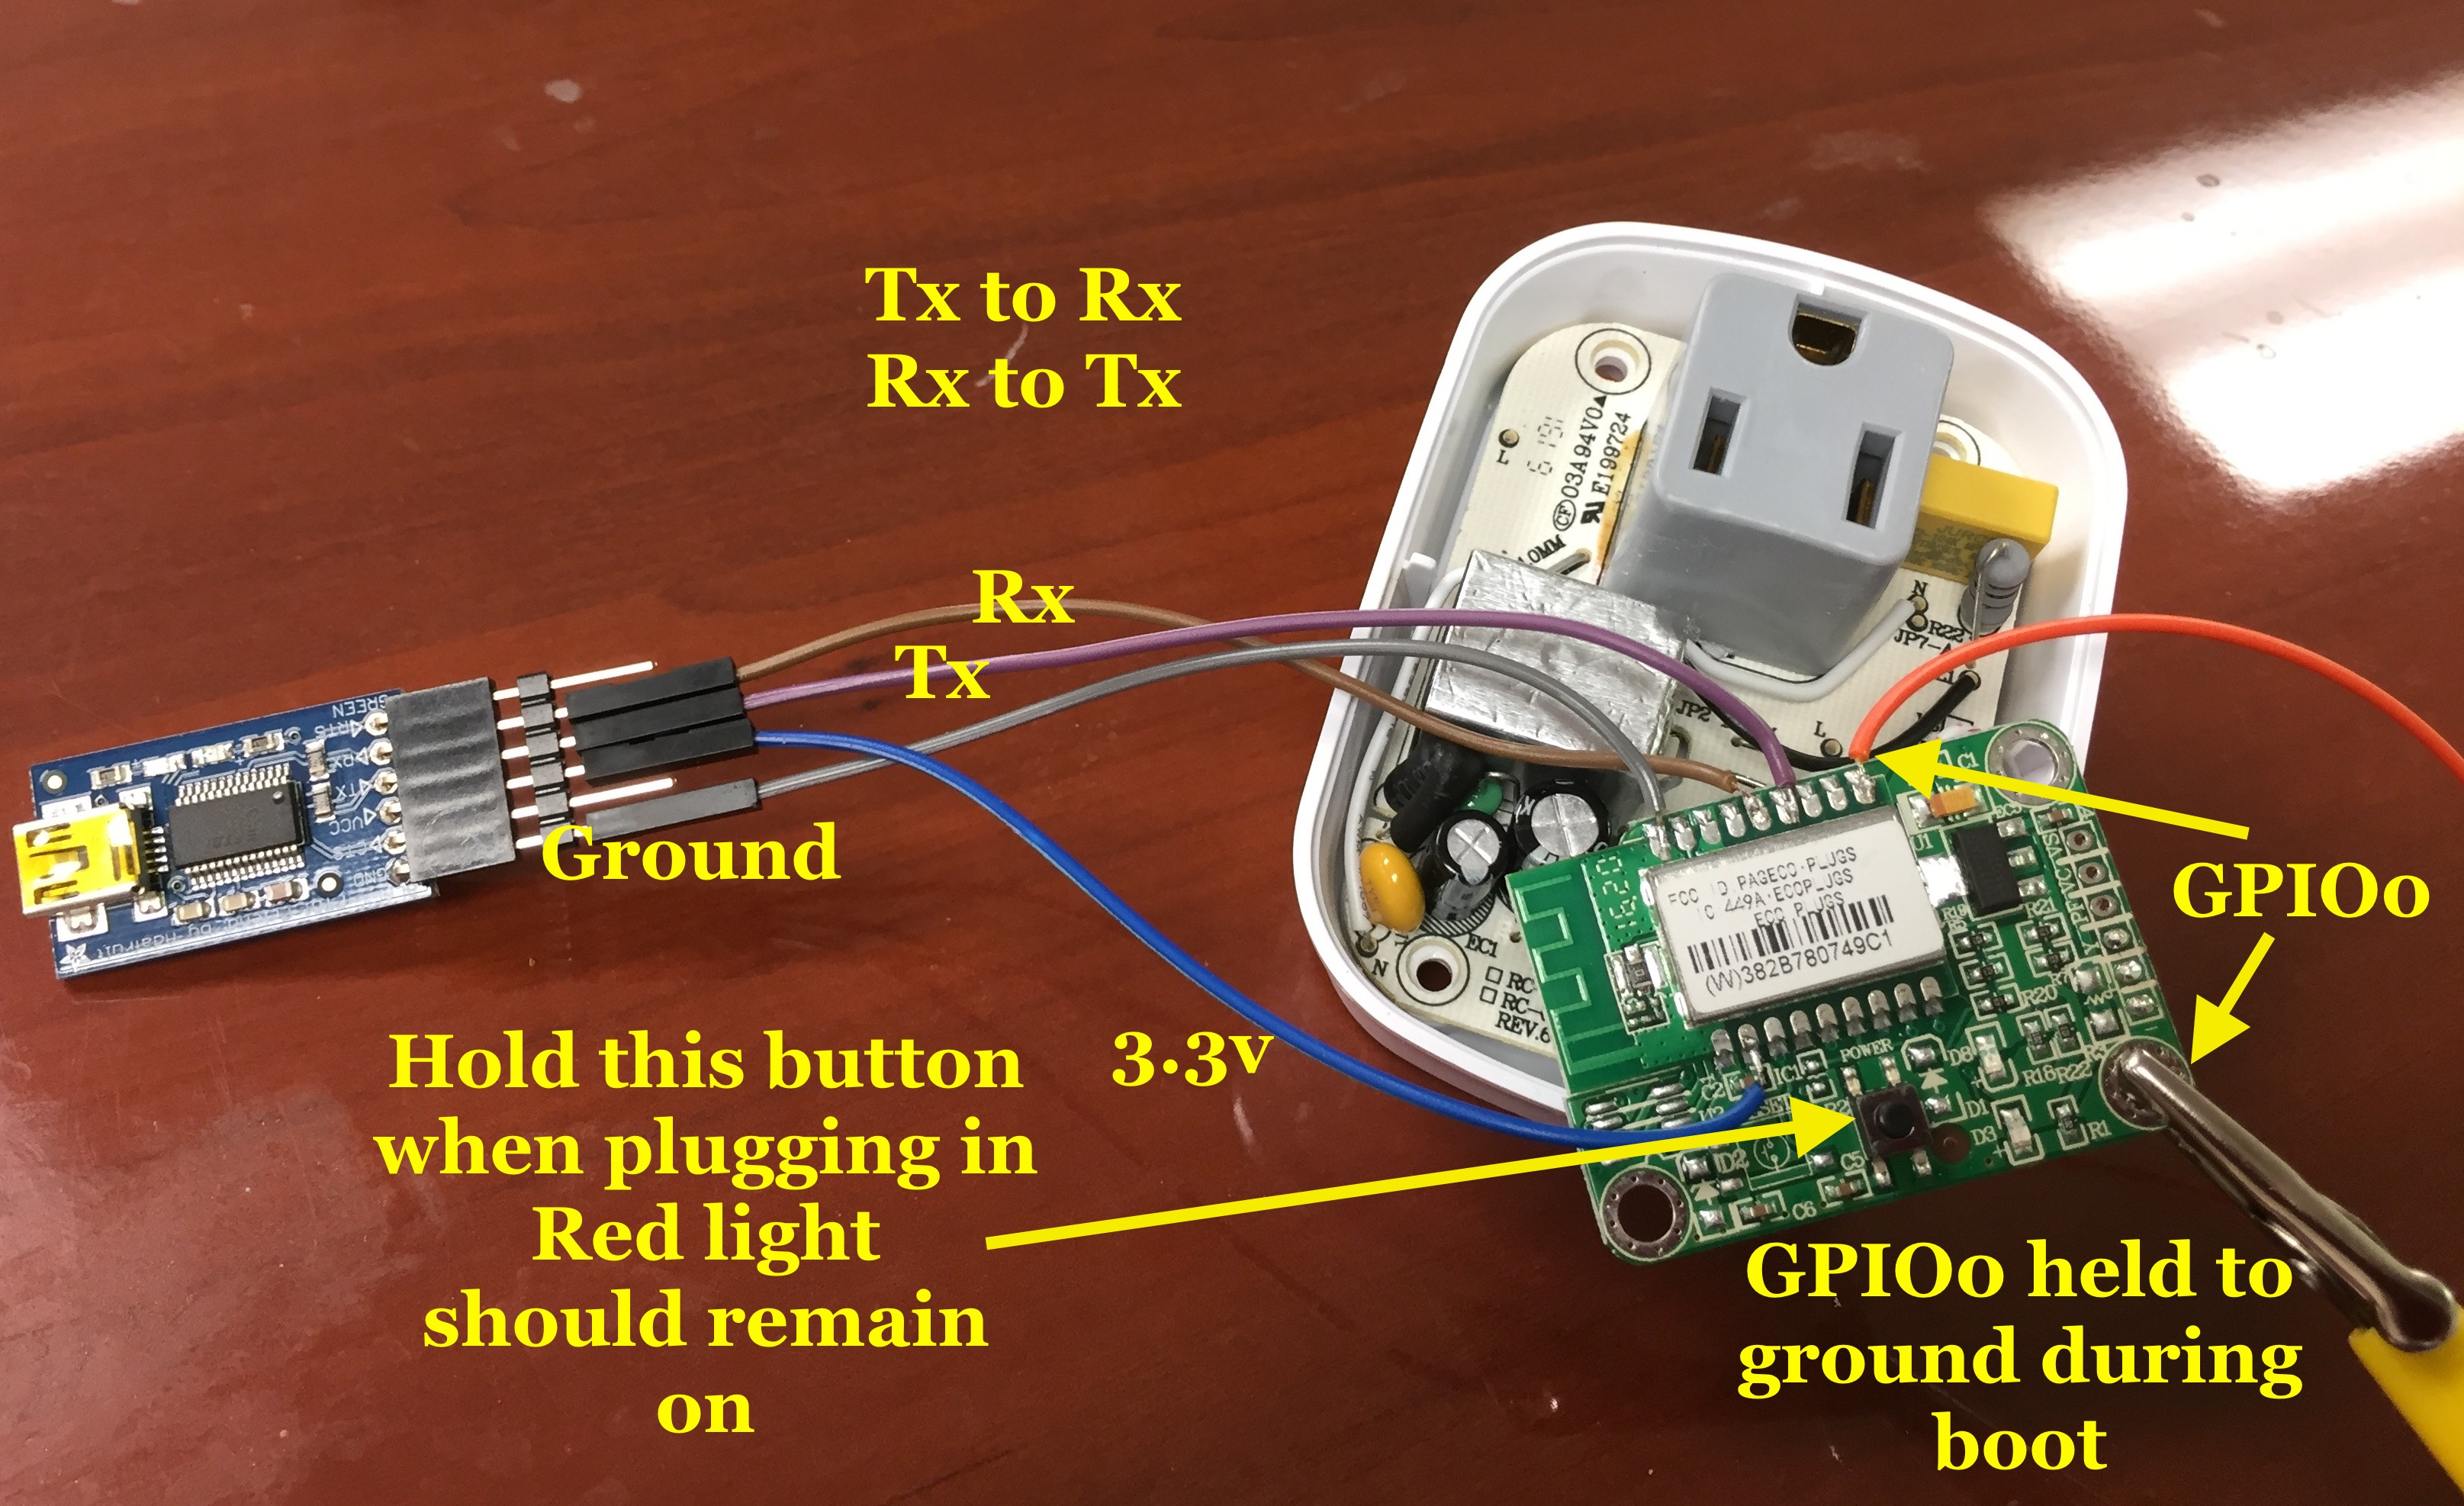 Network Johns Musings Reverse Wall Jack Wiring Gpio 0 Held To Ground I Used An Alligator Clip Do This